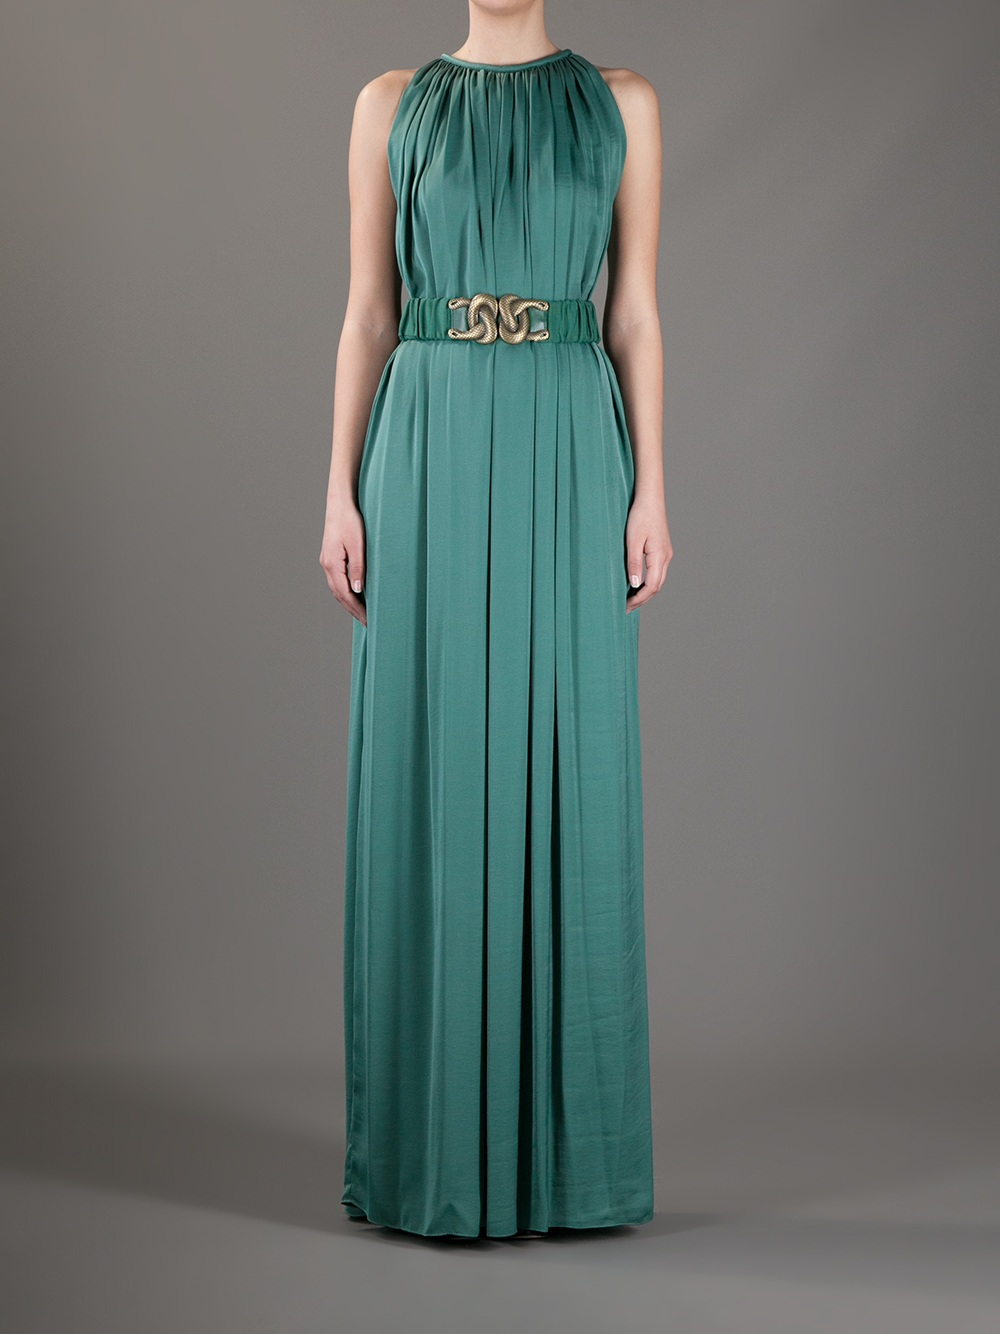 Dress In Pleated Green Lyst Maxi Intropia 7qEtwUv7zx